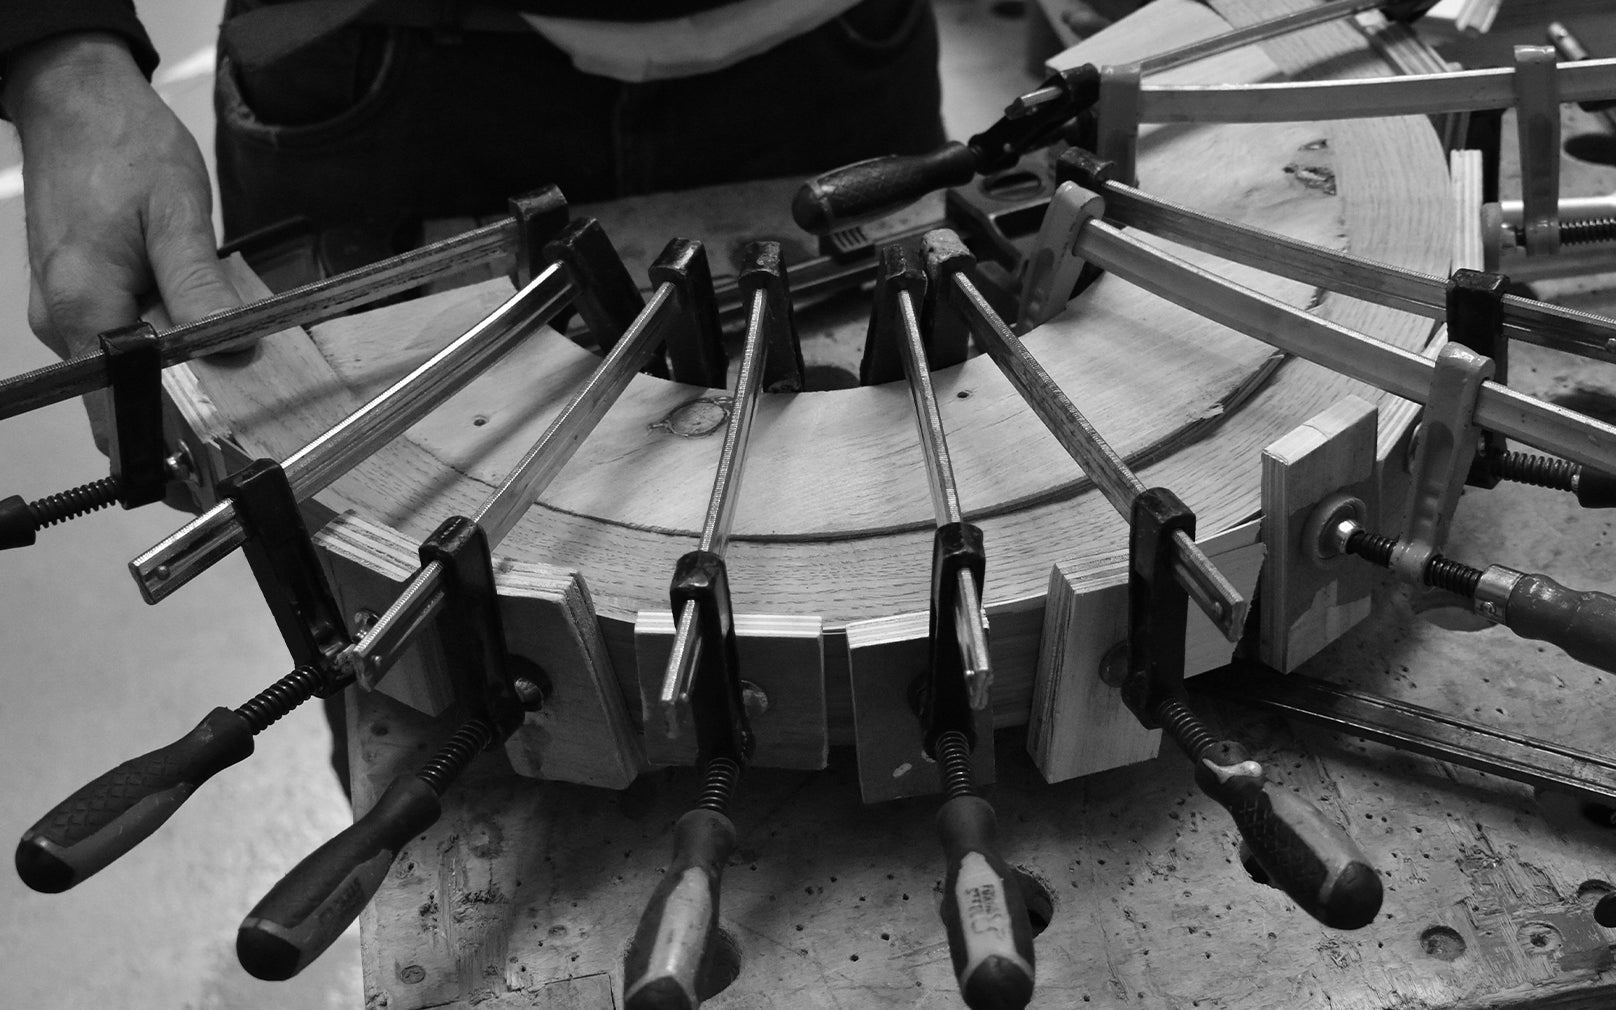 Clamps holding steam bent wood in place